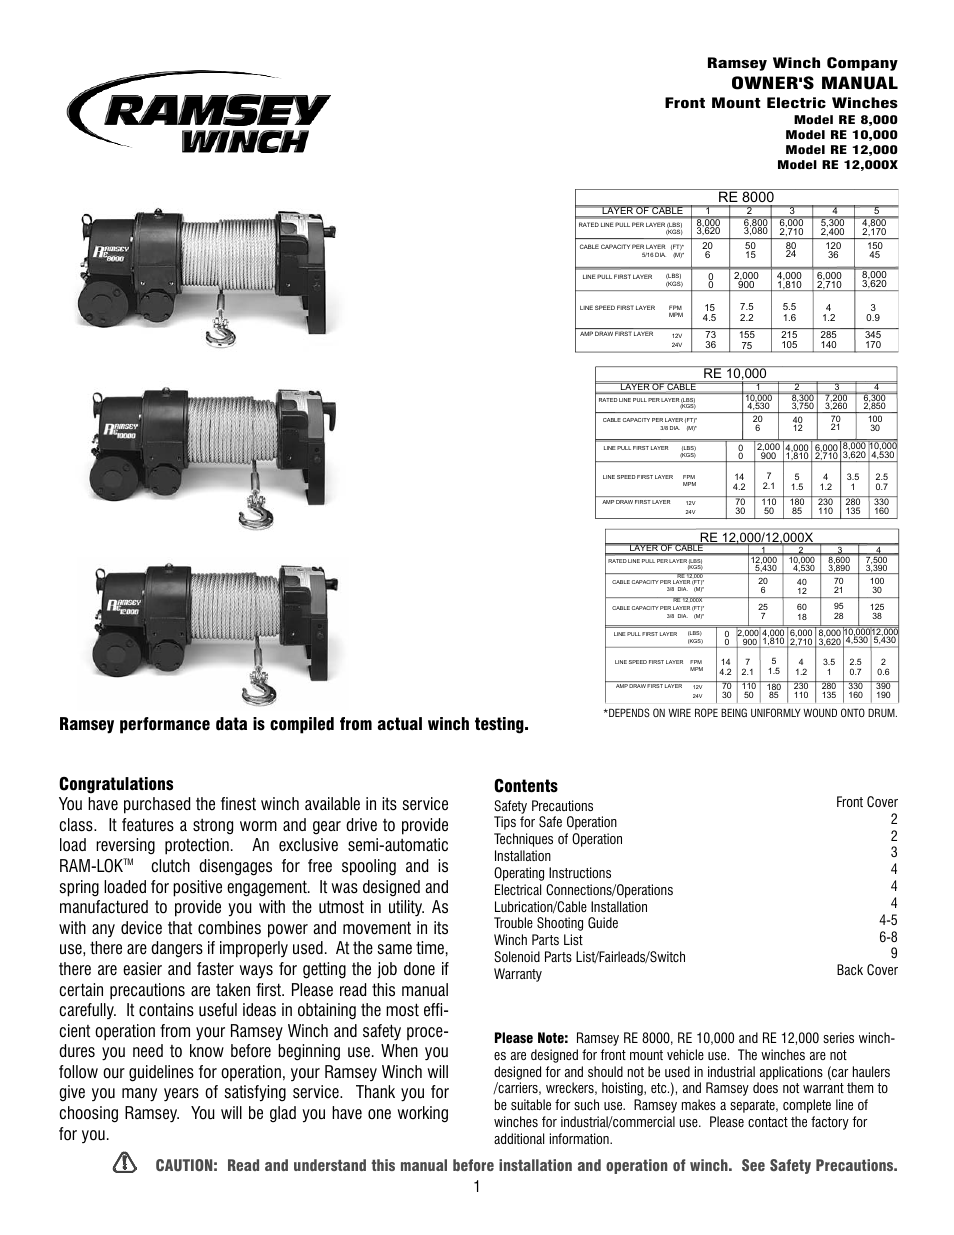 Ramsey 12000 Winch Wiring Diagram | Wiring Liry on